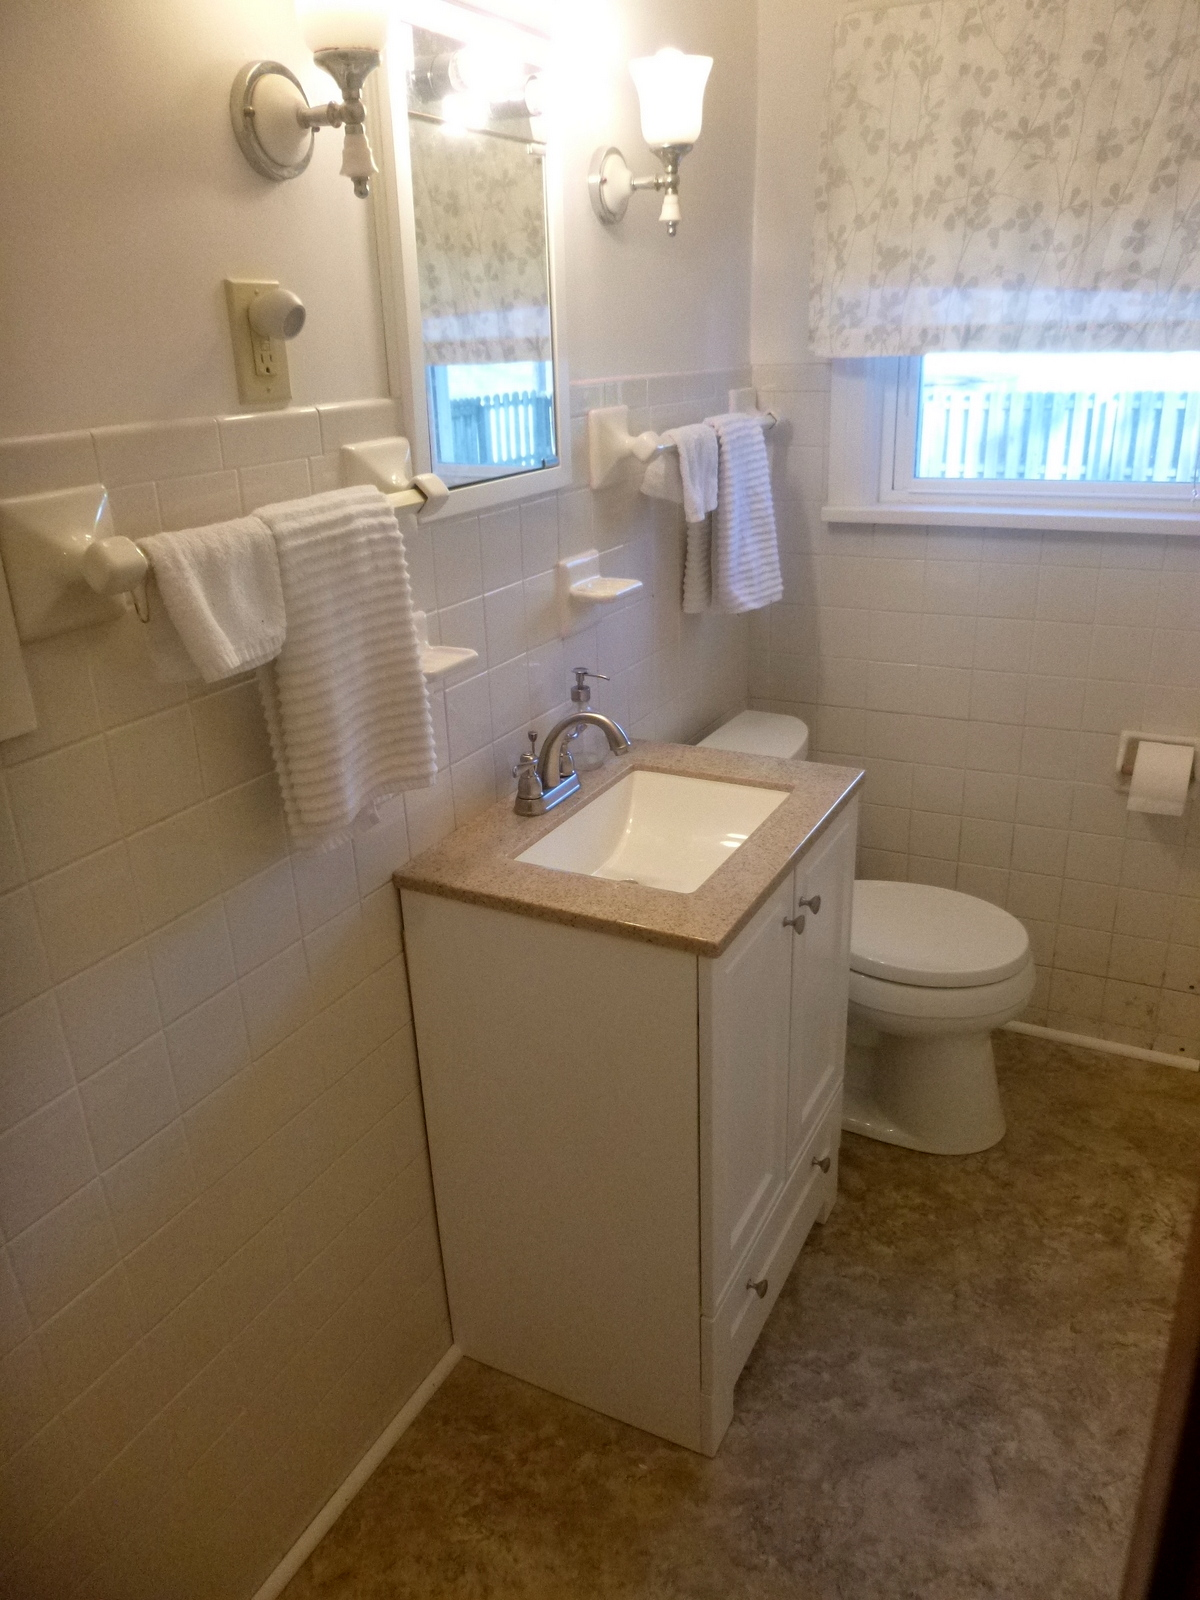 Leaky Toilet Results In Bathroom Repair And Remodel - Bathroom repair and remodel